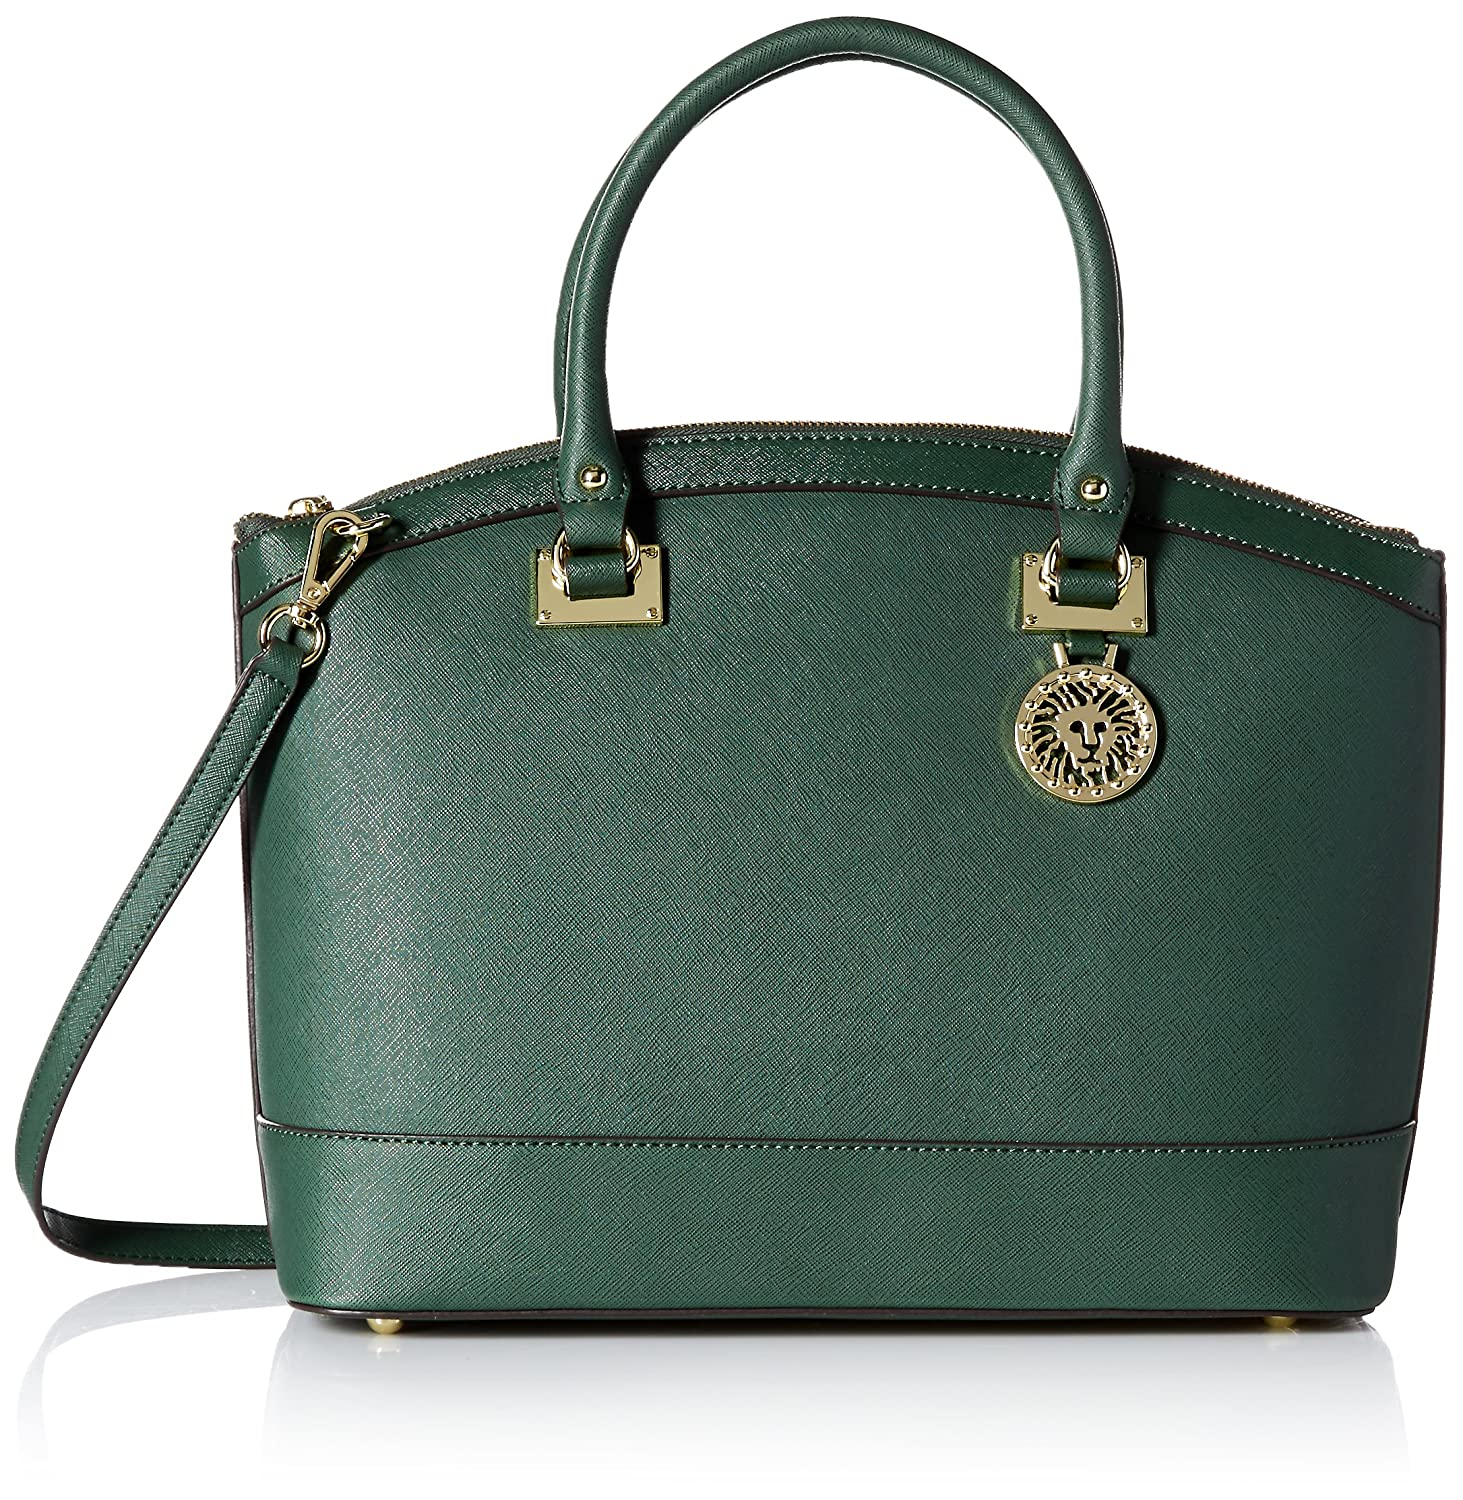 Amazon Global Store!! Women`s Fashion On Handbags In Global Store By Amazon | Anne Klein New Recruits Large Dome Satchel Bag @ Rs.4,769.28